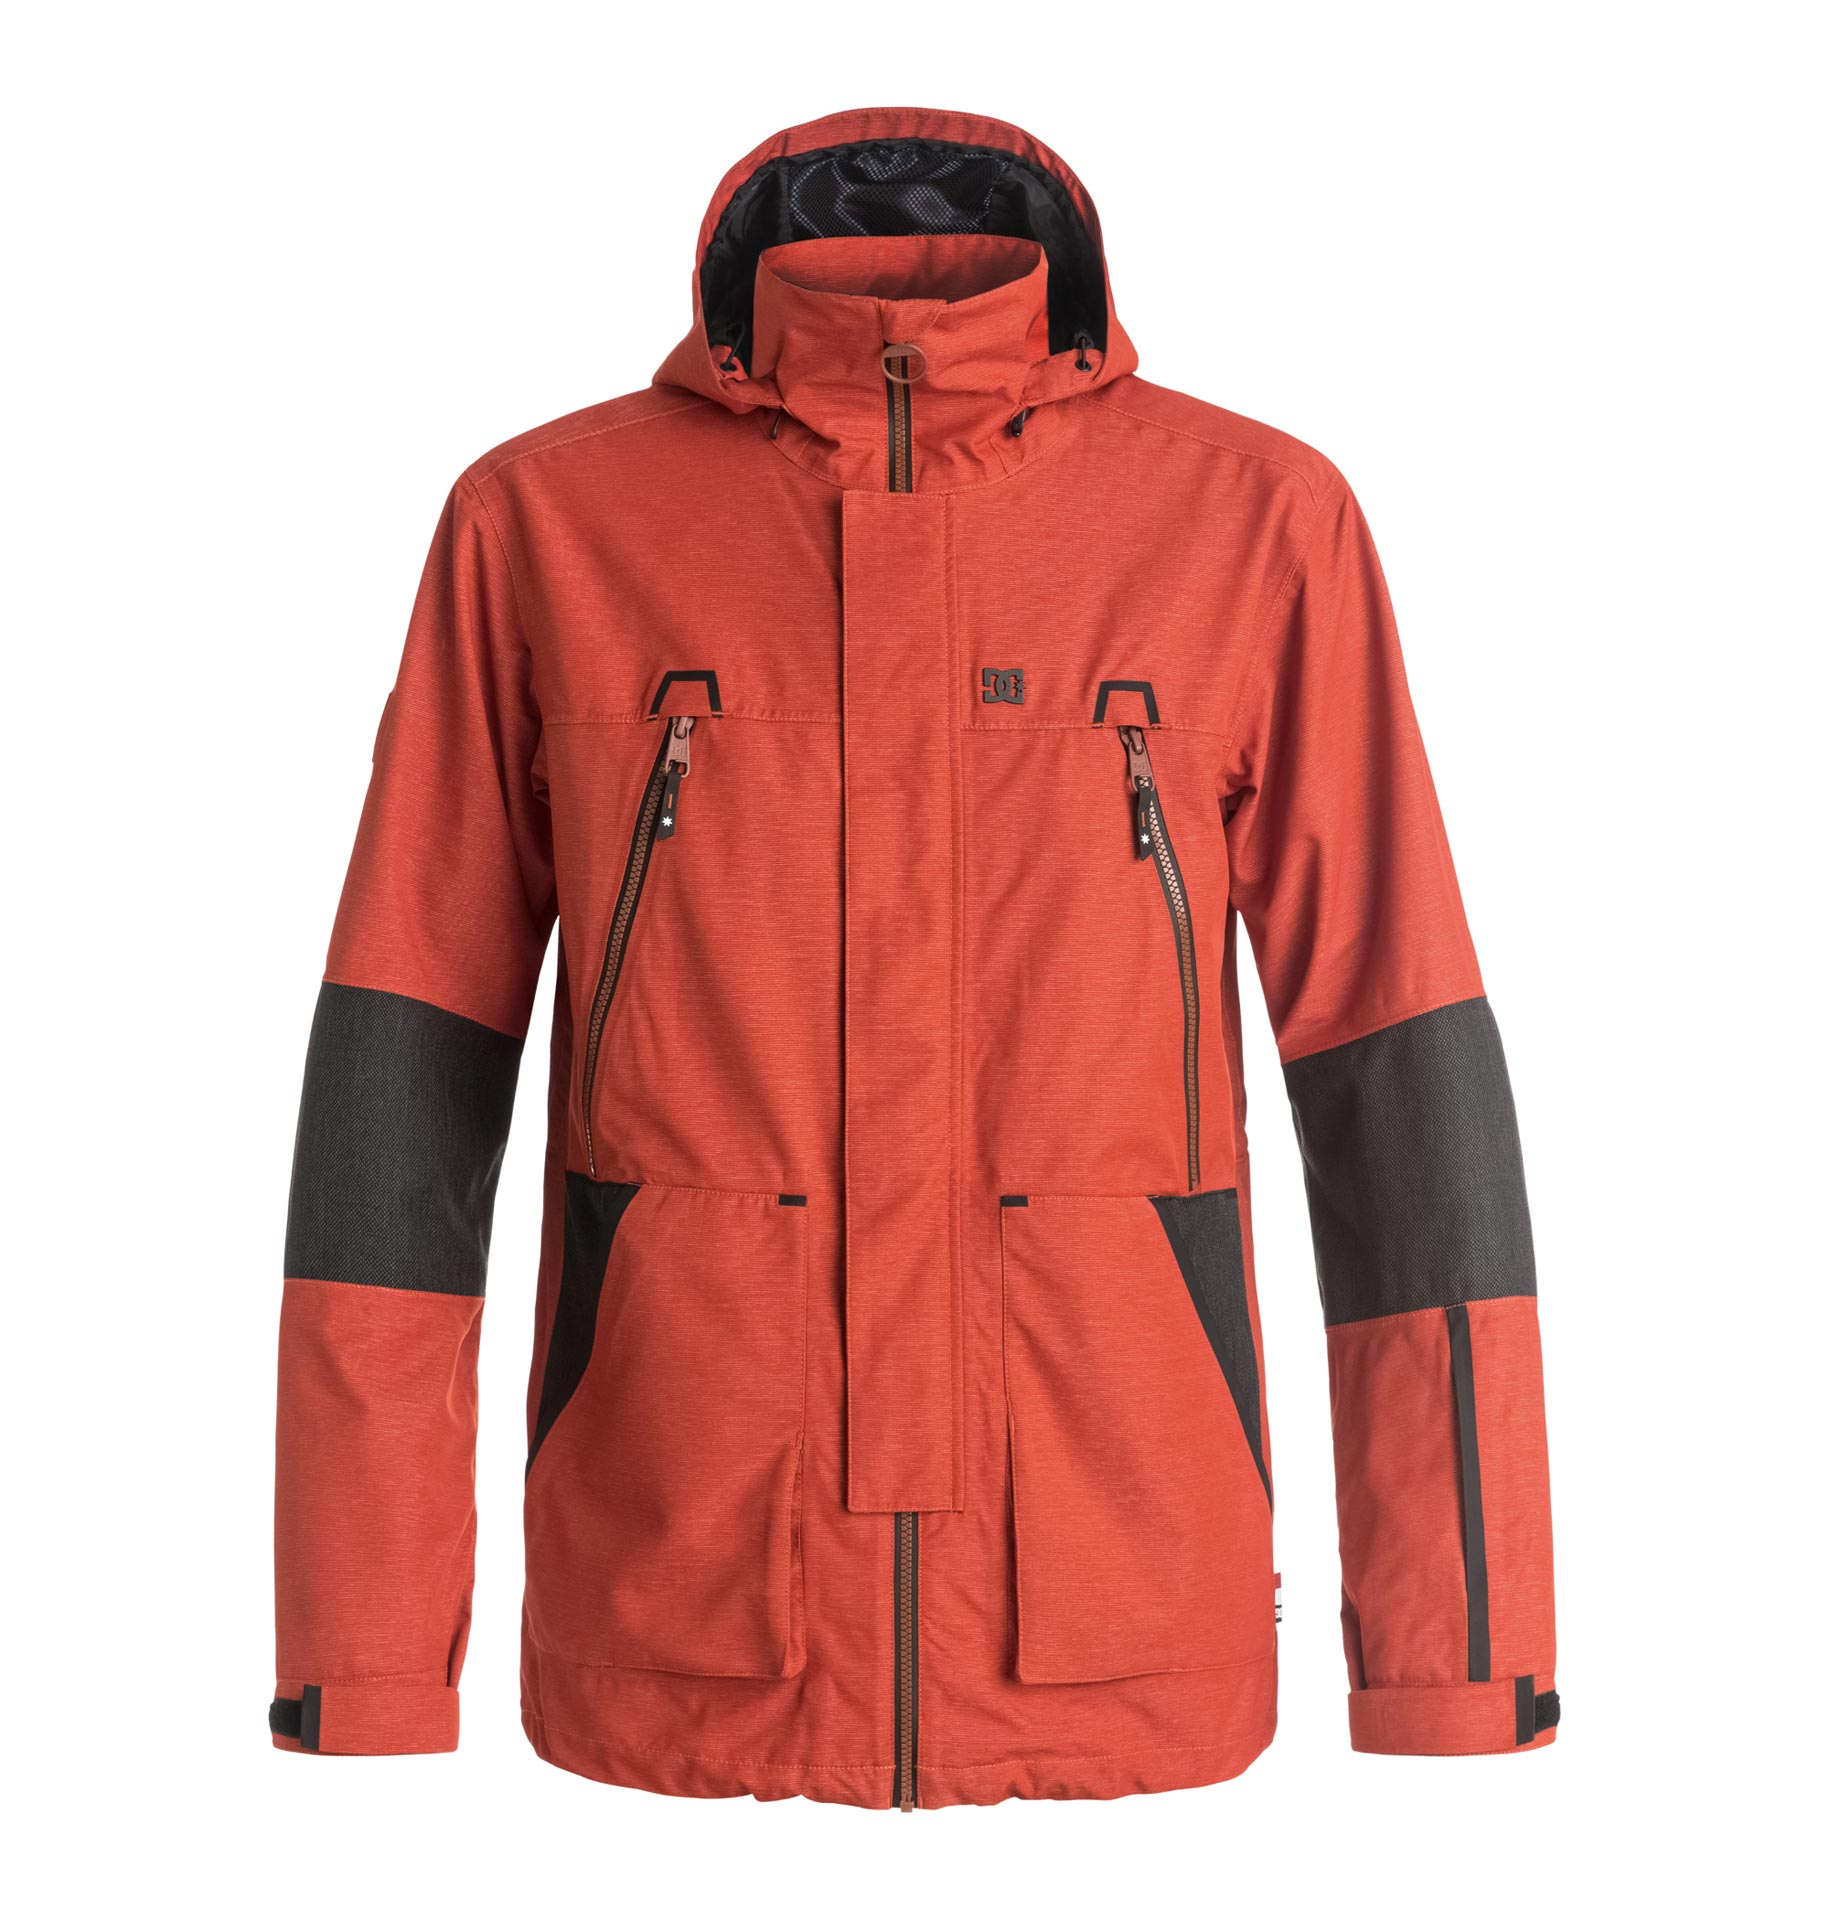 DC Shoes: The Command Jacket